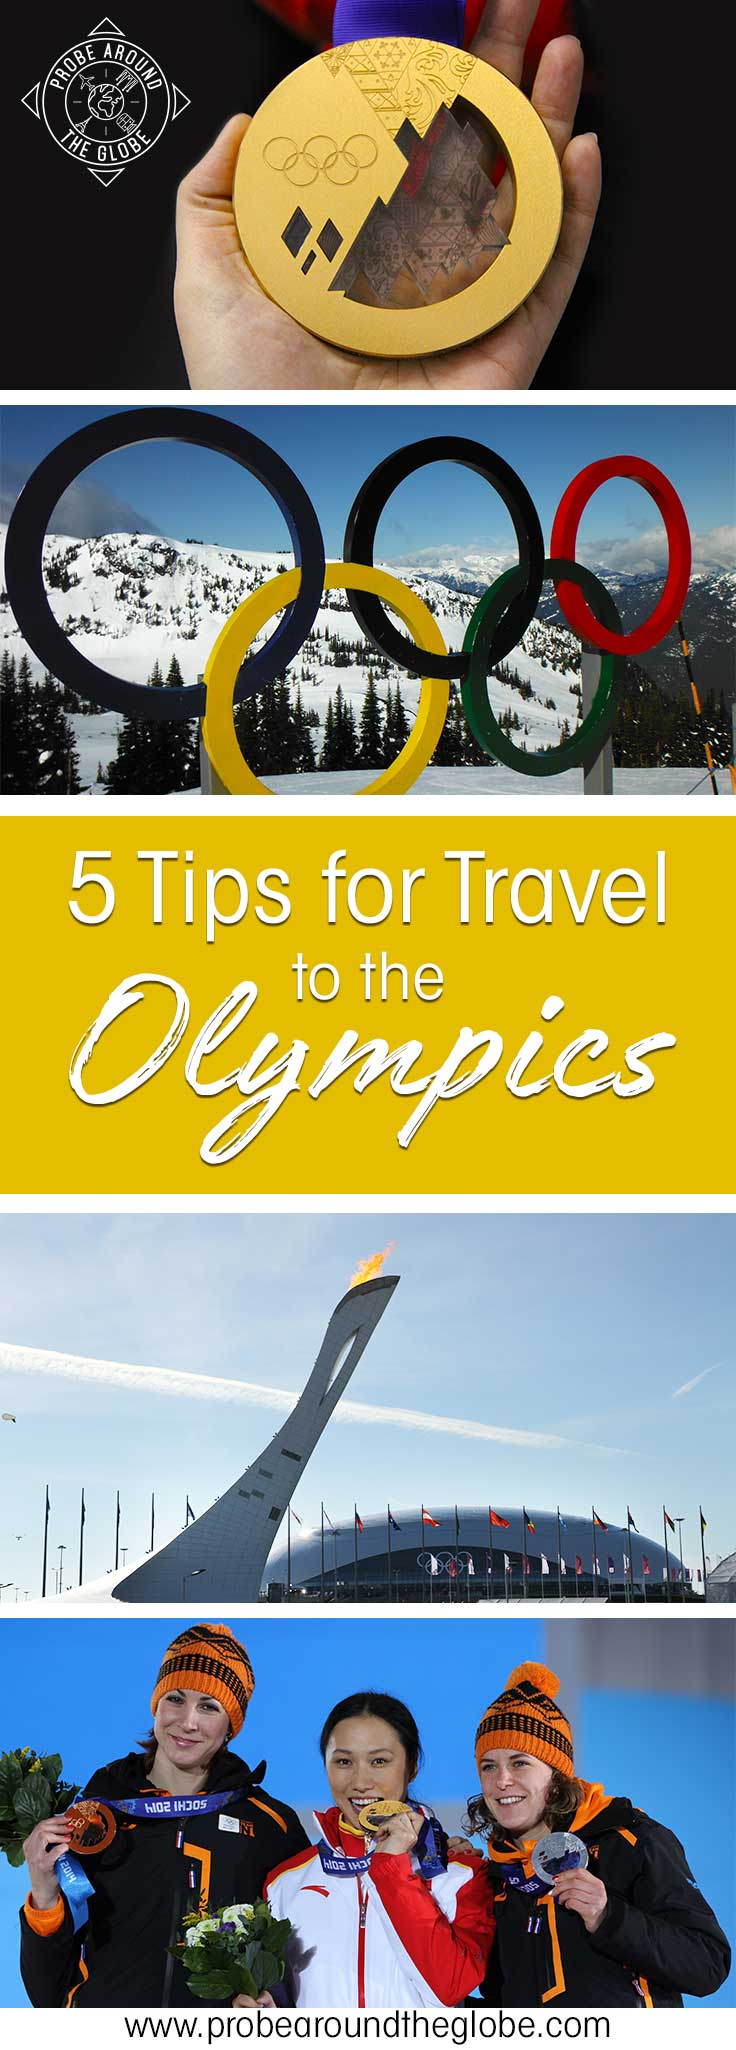 5 easy tips to make the most out Olympic travel. I share my Olympic experience and give tips for your Olympic travel to Pyeongchang2018.